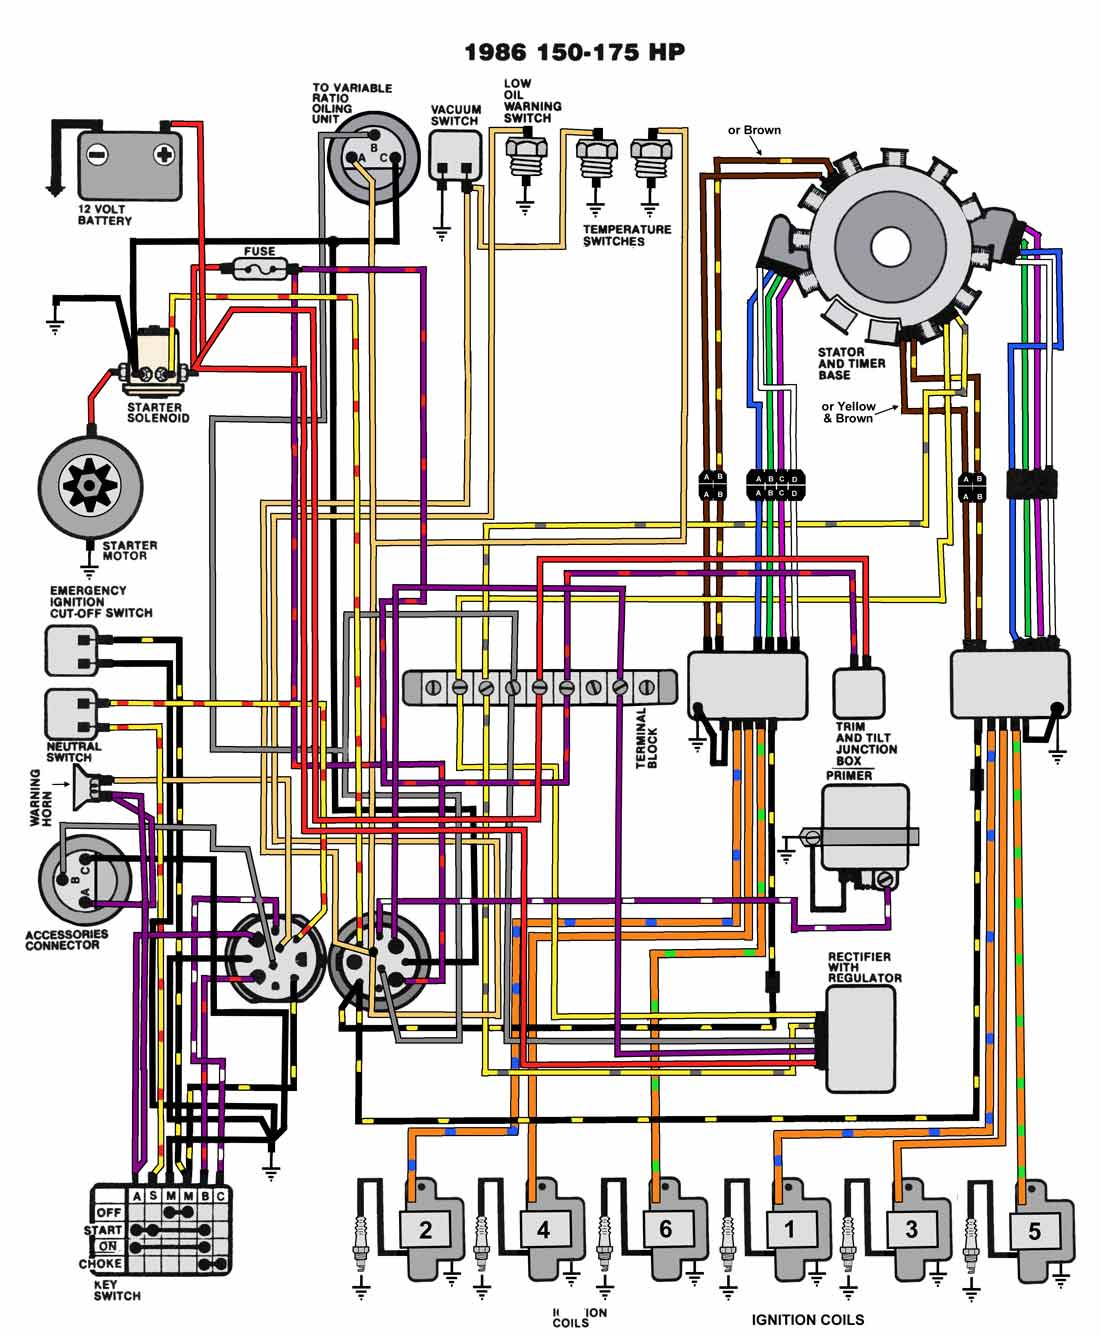 EVINRUDE JOHNSON Outboard Wiring Diagrams -- MASTERTECH MARINE -- on chris craft wiring diagram, polaris wiring diagram, chevrolet wiring diagram, clark wiring diagram, evinrude key switch wiring diagram, atlas wiring diagram, johnson wiring diagram, omc schematic diagrams, john deere wiring diagram, ace wiring diagram, sea ray wiring diagram, apc wiring diagram, sears wiring diagram, viking wiring diagram, nissan wiring diagram, 96 evinrude wiring diagram, regal wiring diagram, 1972 50 hp evinrude wiring diagram, omg wiring diagram,